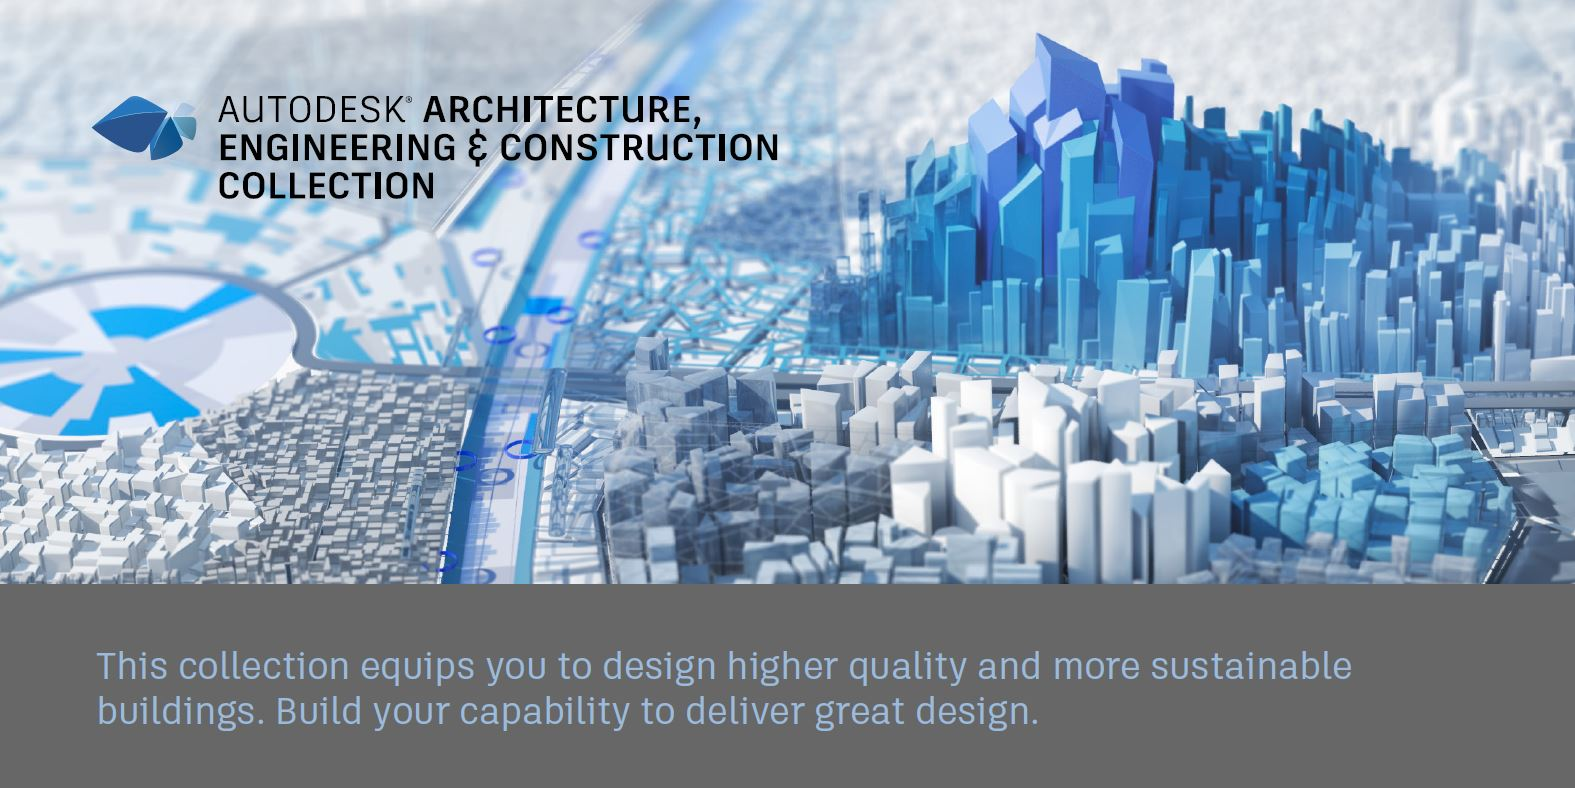 Autodesk Seek Advanced Solutions Inc Design Software